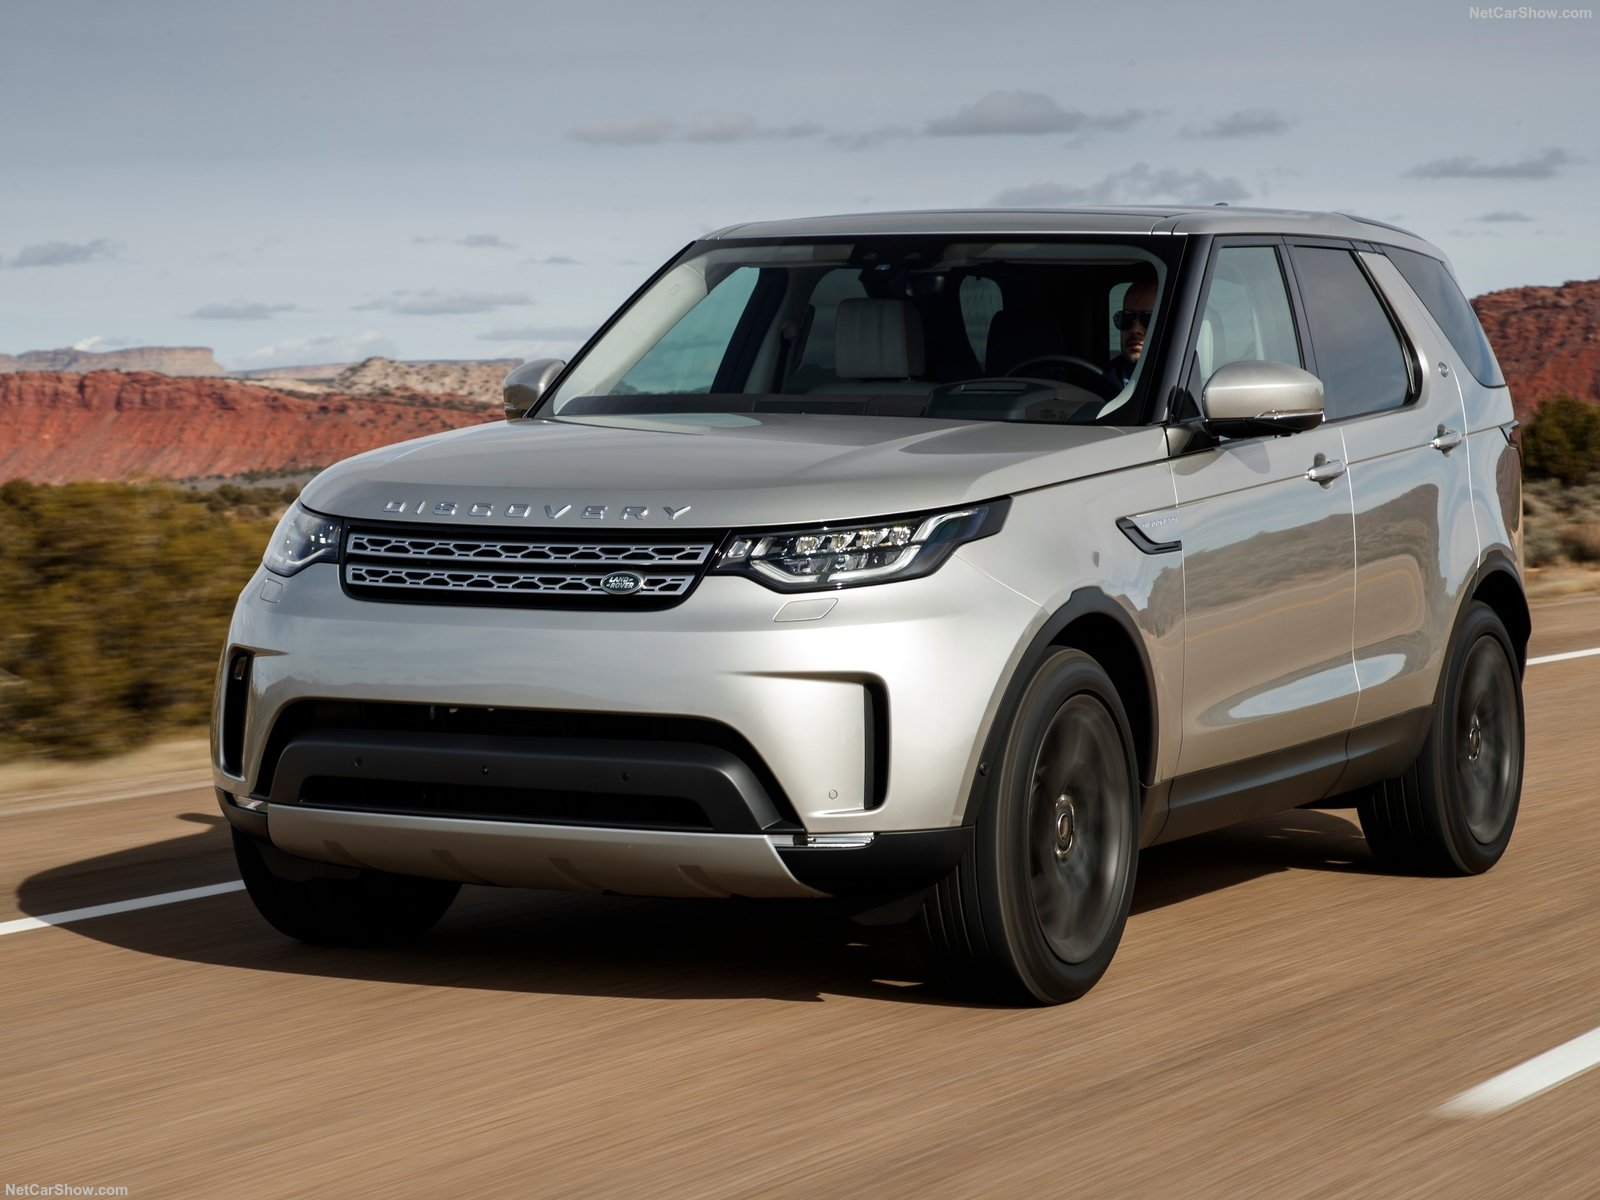 Land Rover Discovery photo 180261